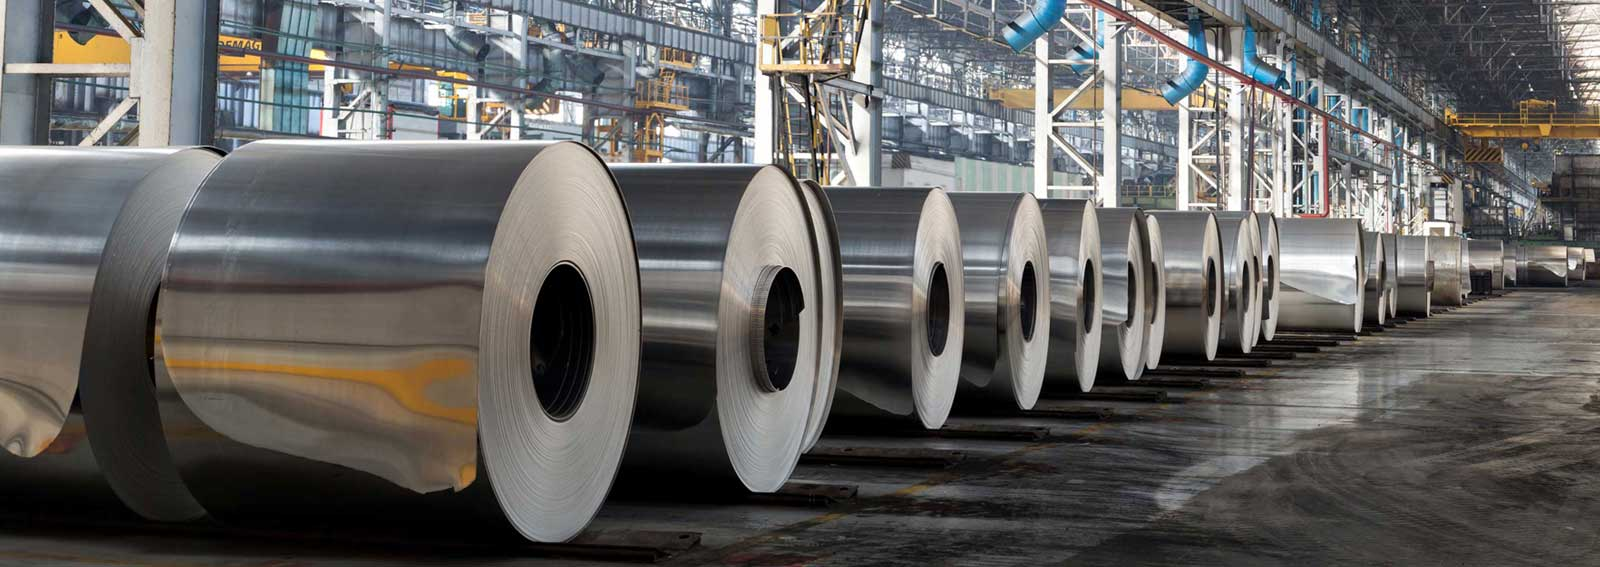 SMO254, Duplex, Super Duplex Steel Manufacturer & Supplier